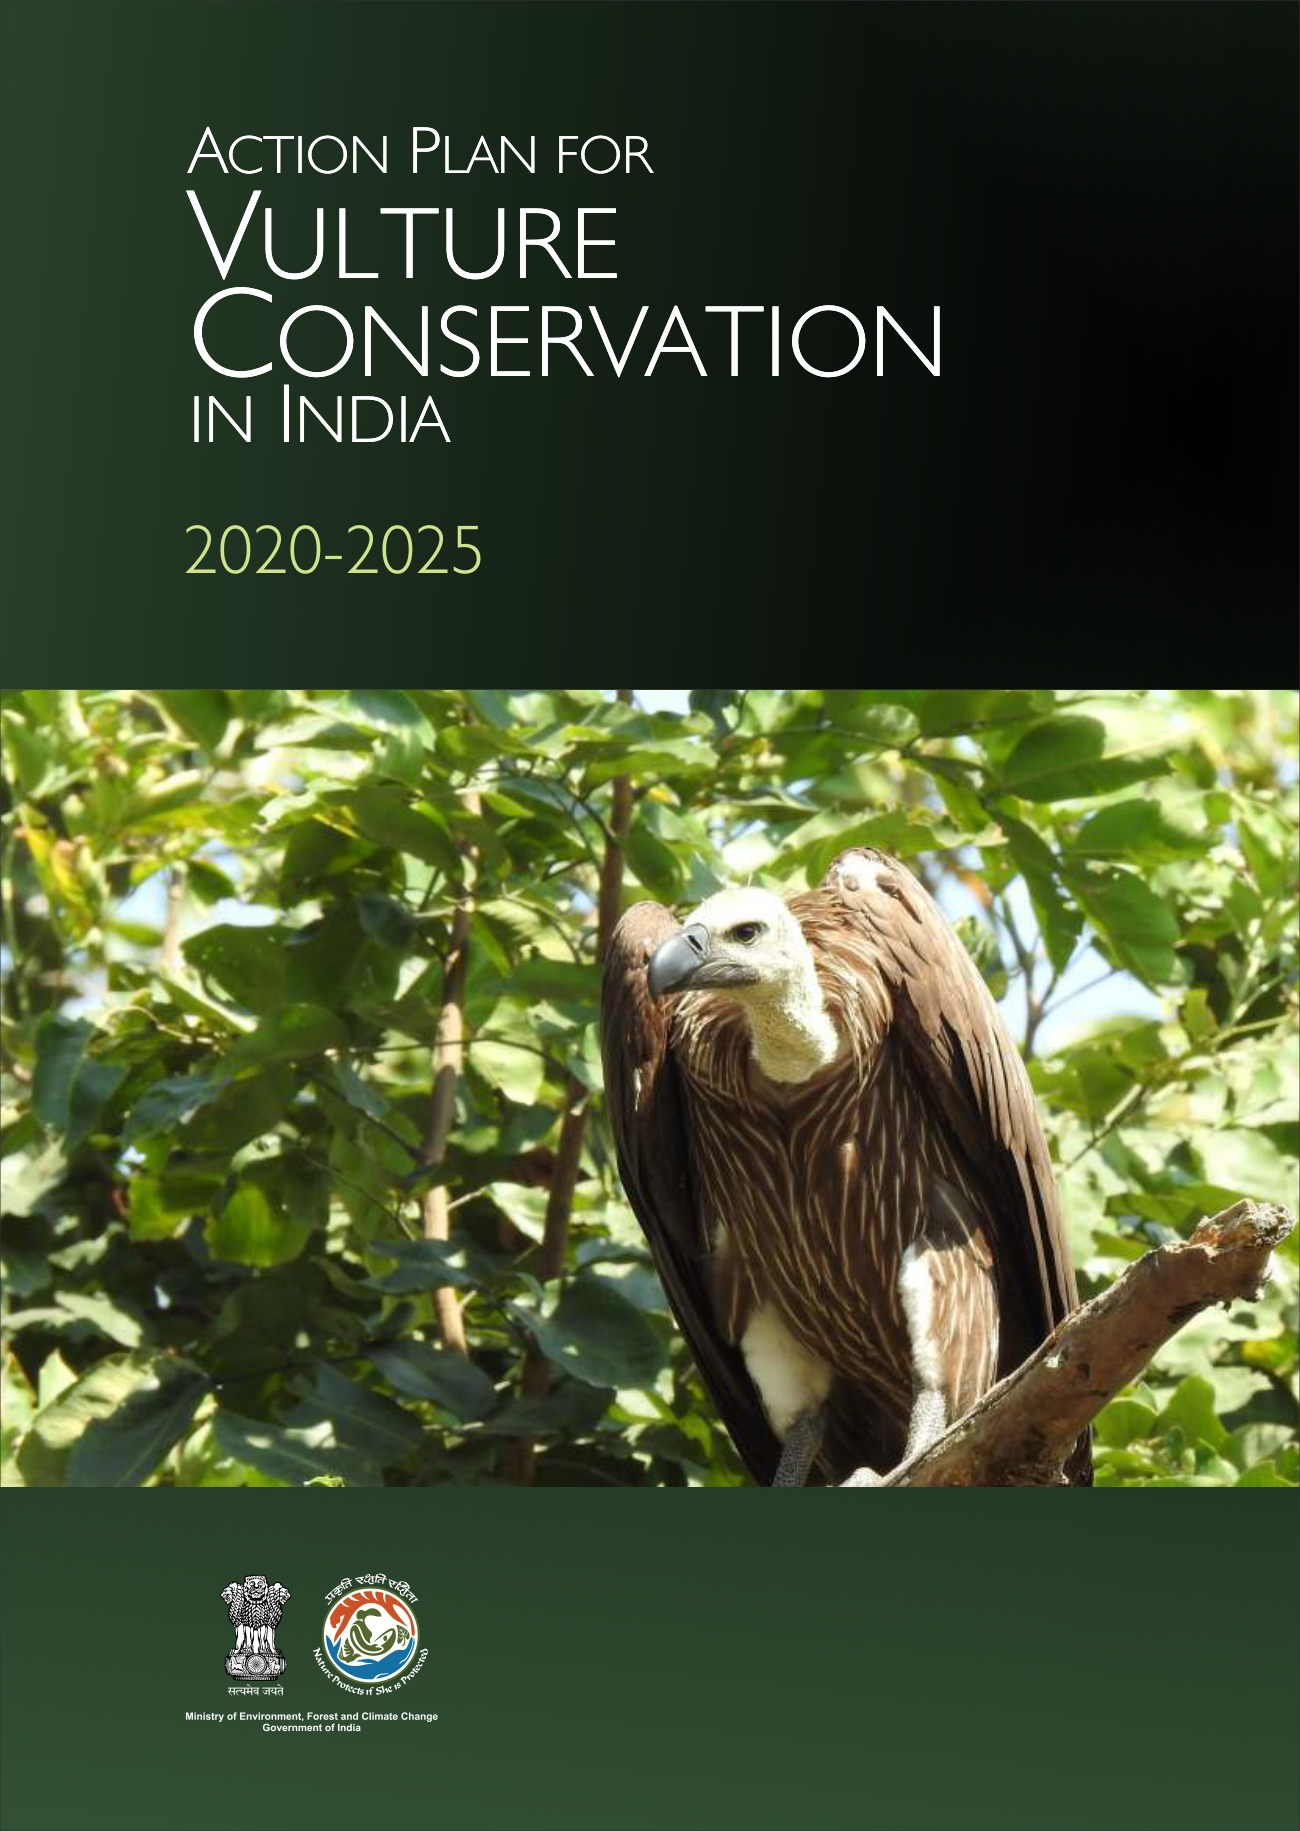 Image of cover of Action Plan for Vulture Conservation in Indian 2020-2025